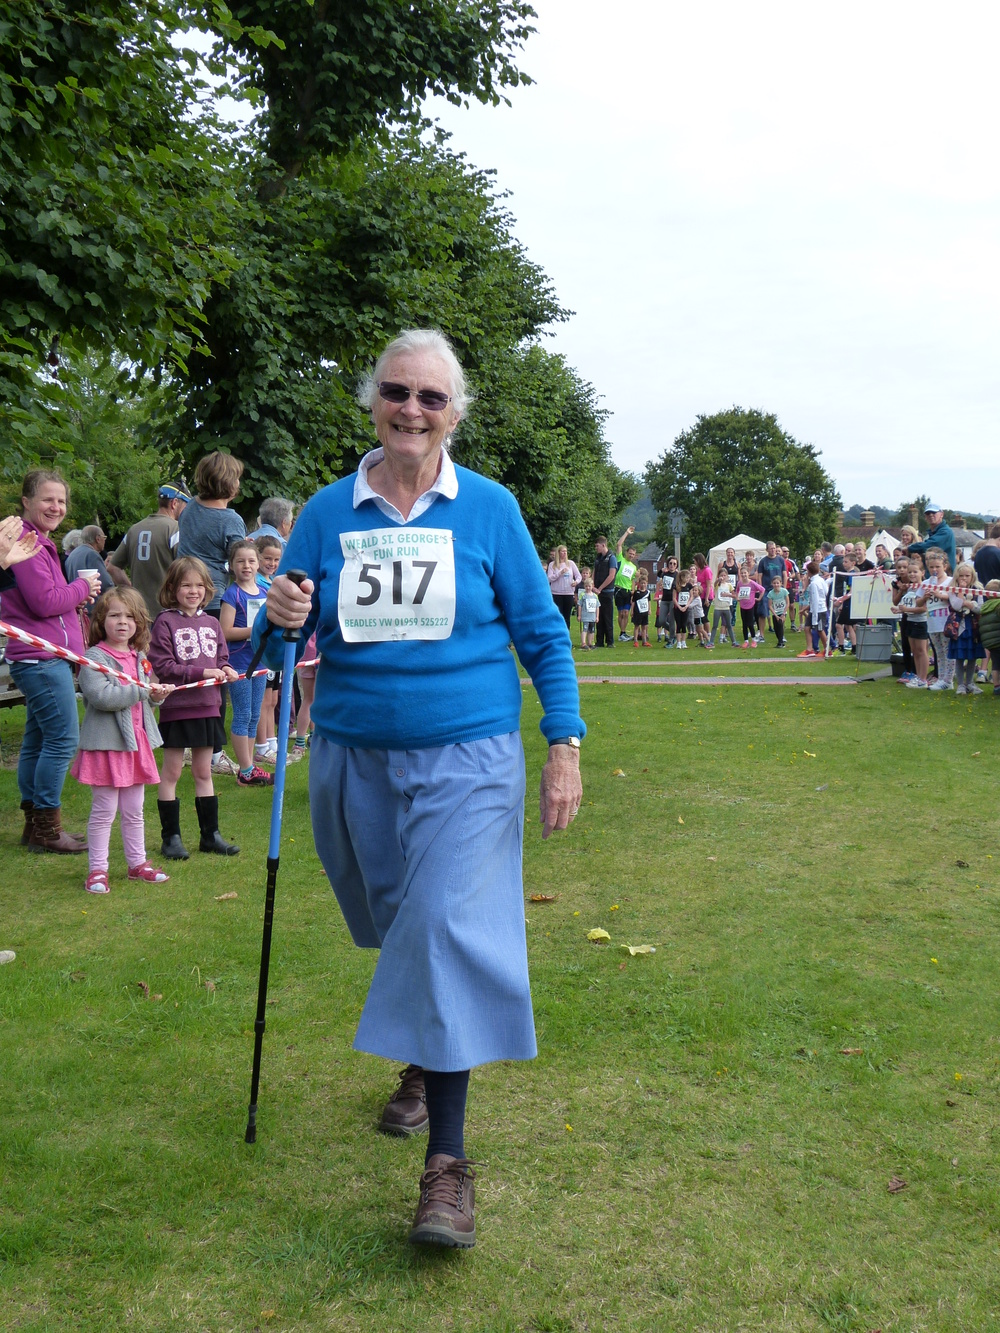 Lesley Crowther finishes the Fun Run